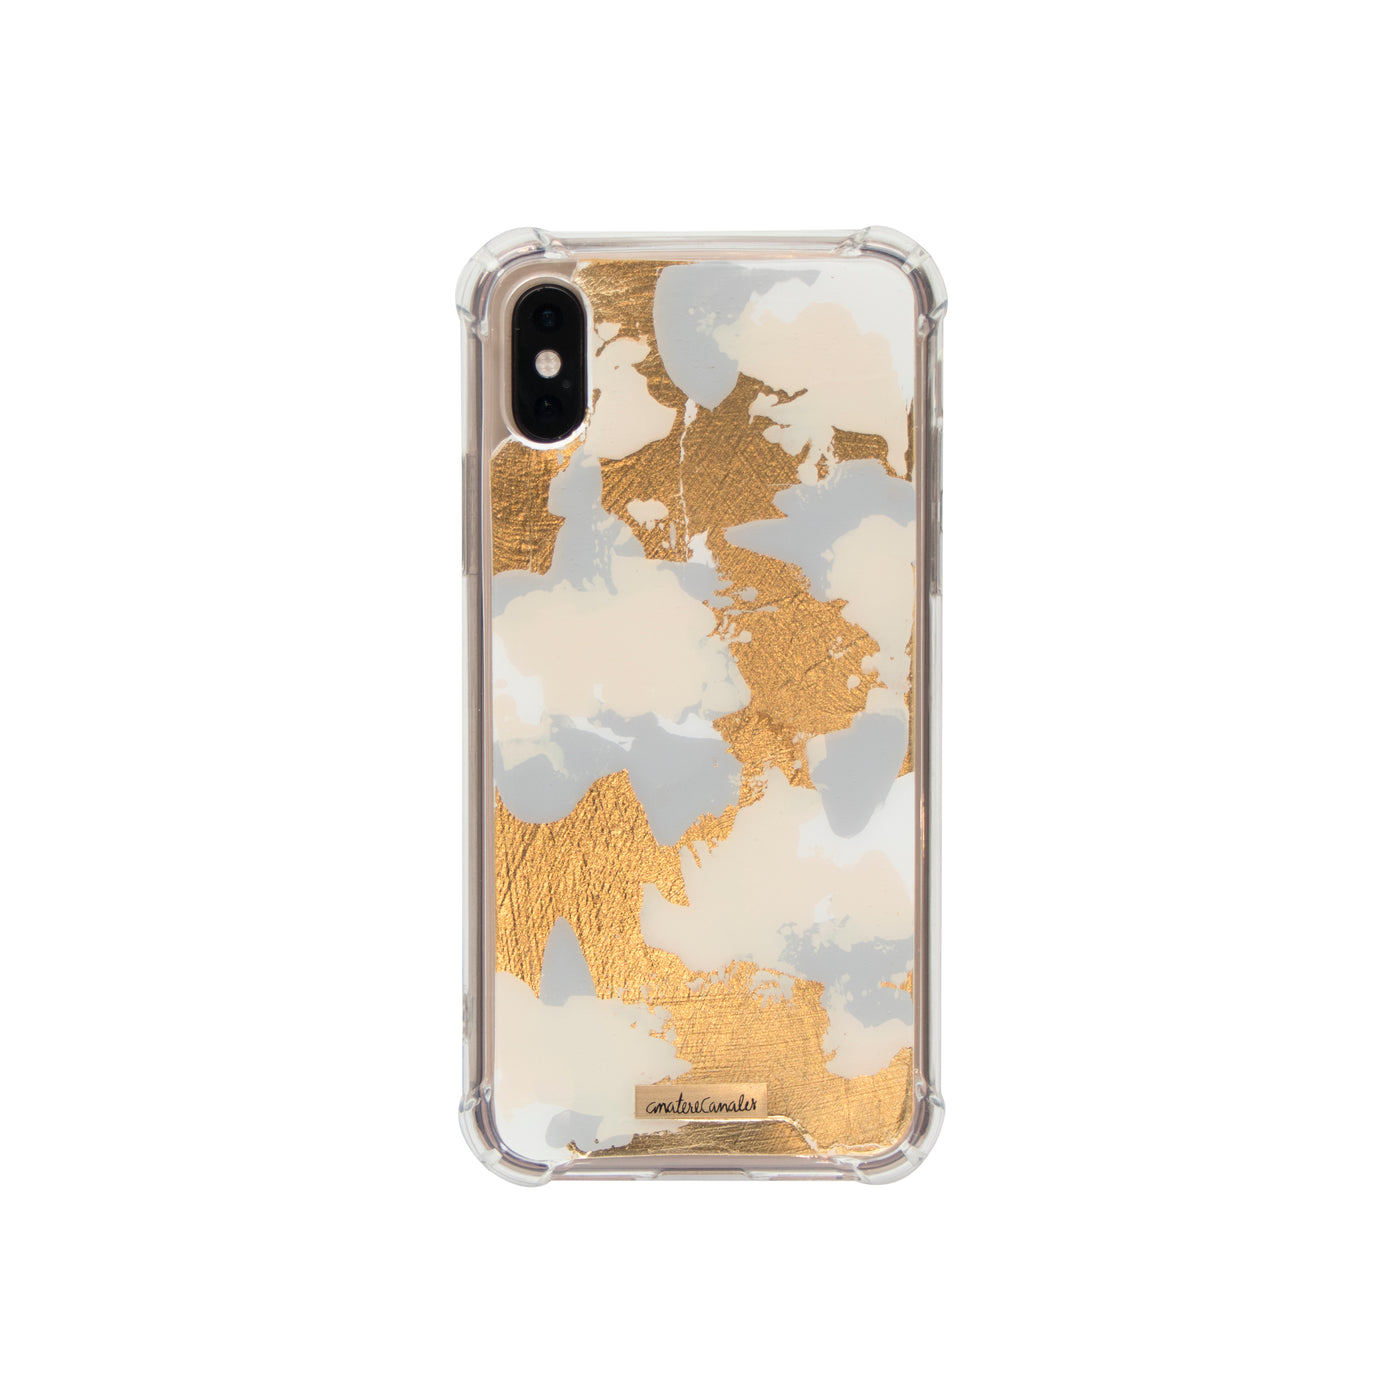 Ivory Opal Case/Funda para iPhone/Samsung - Ana Tere Canales